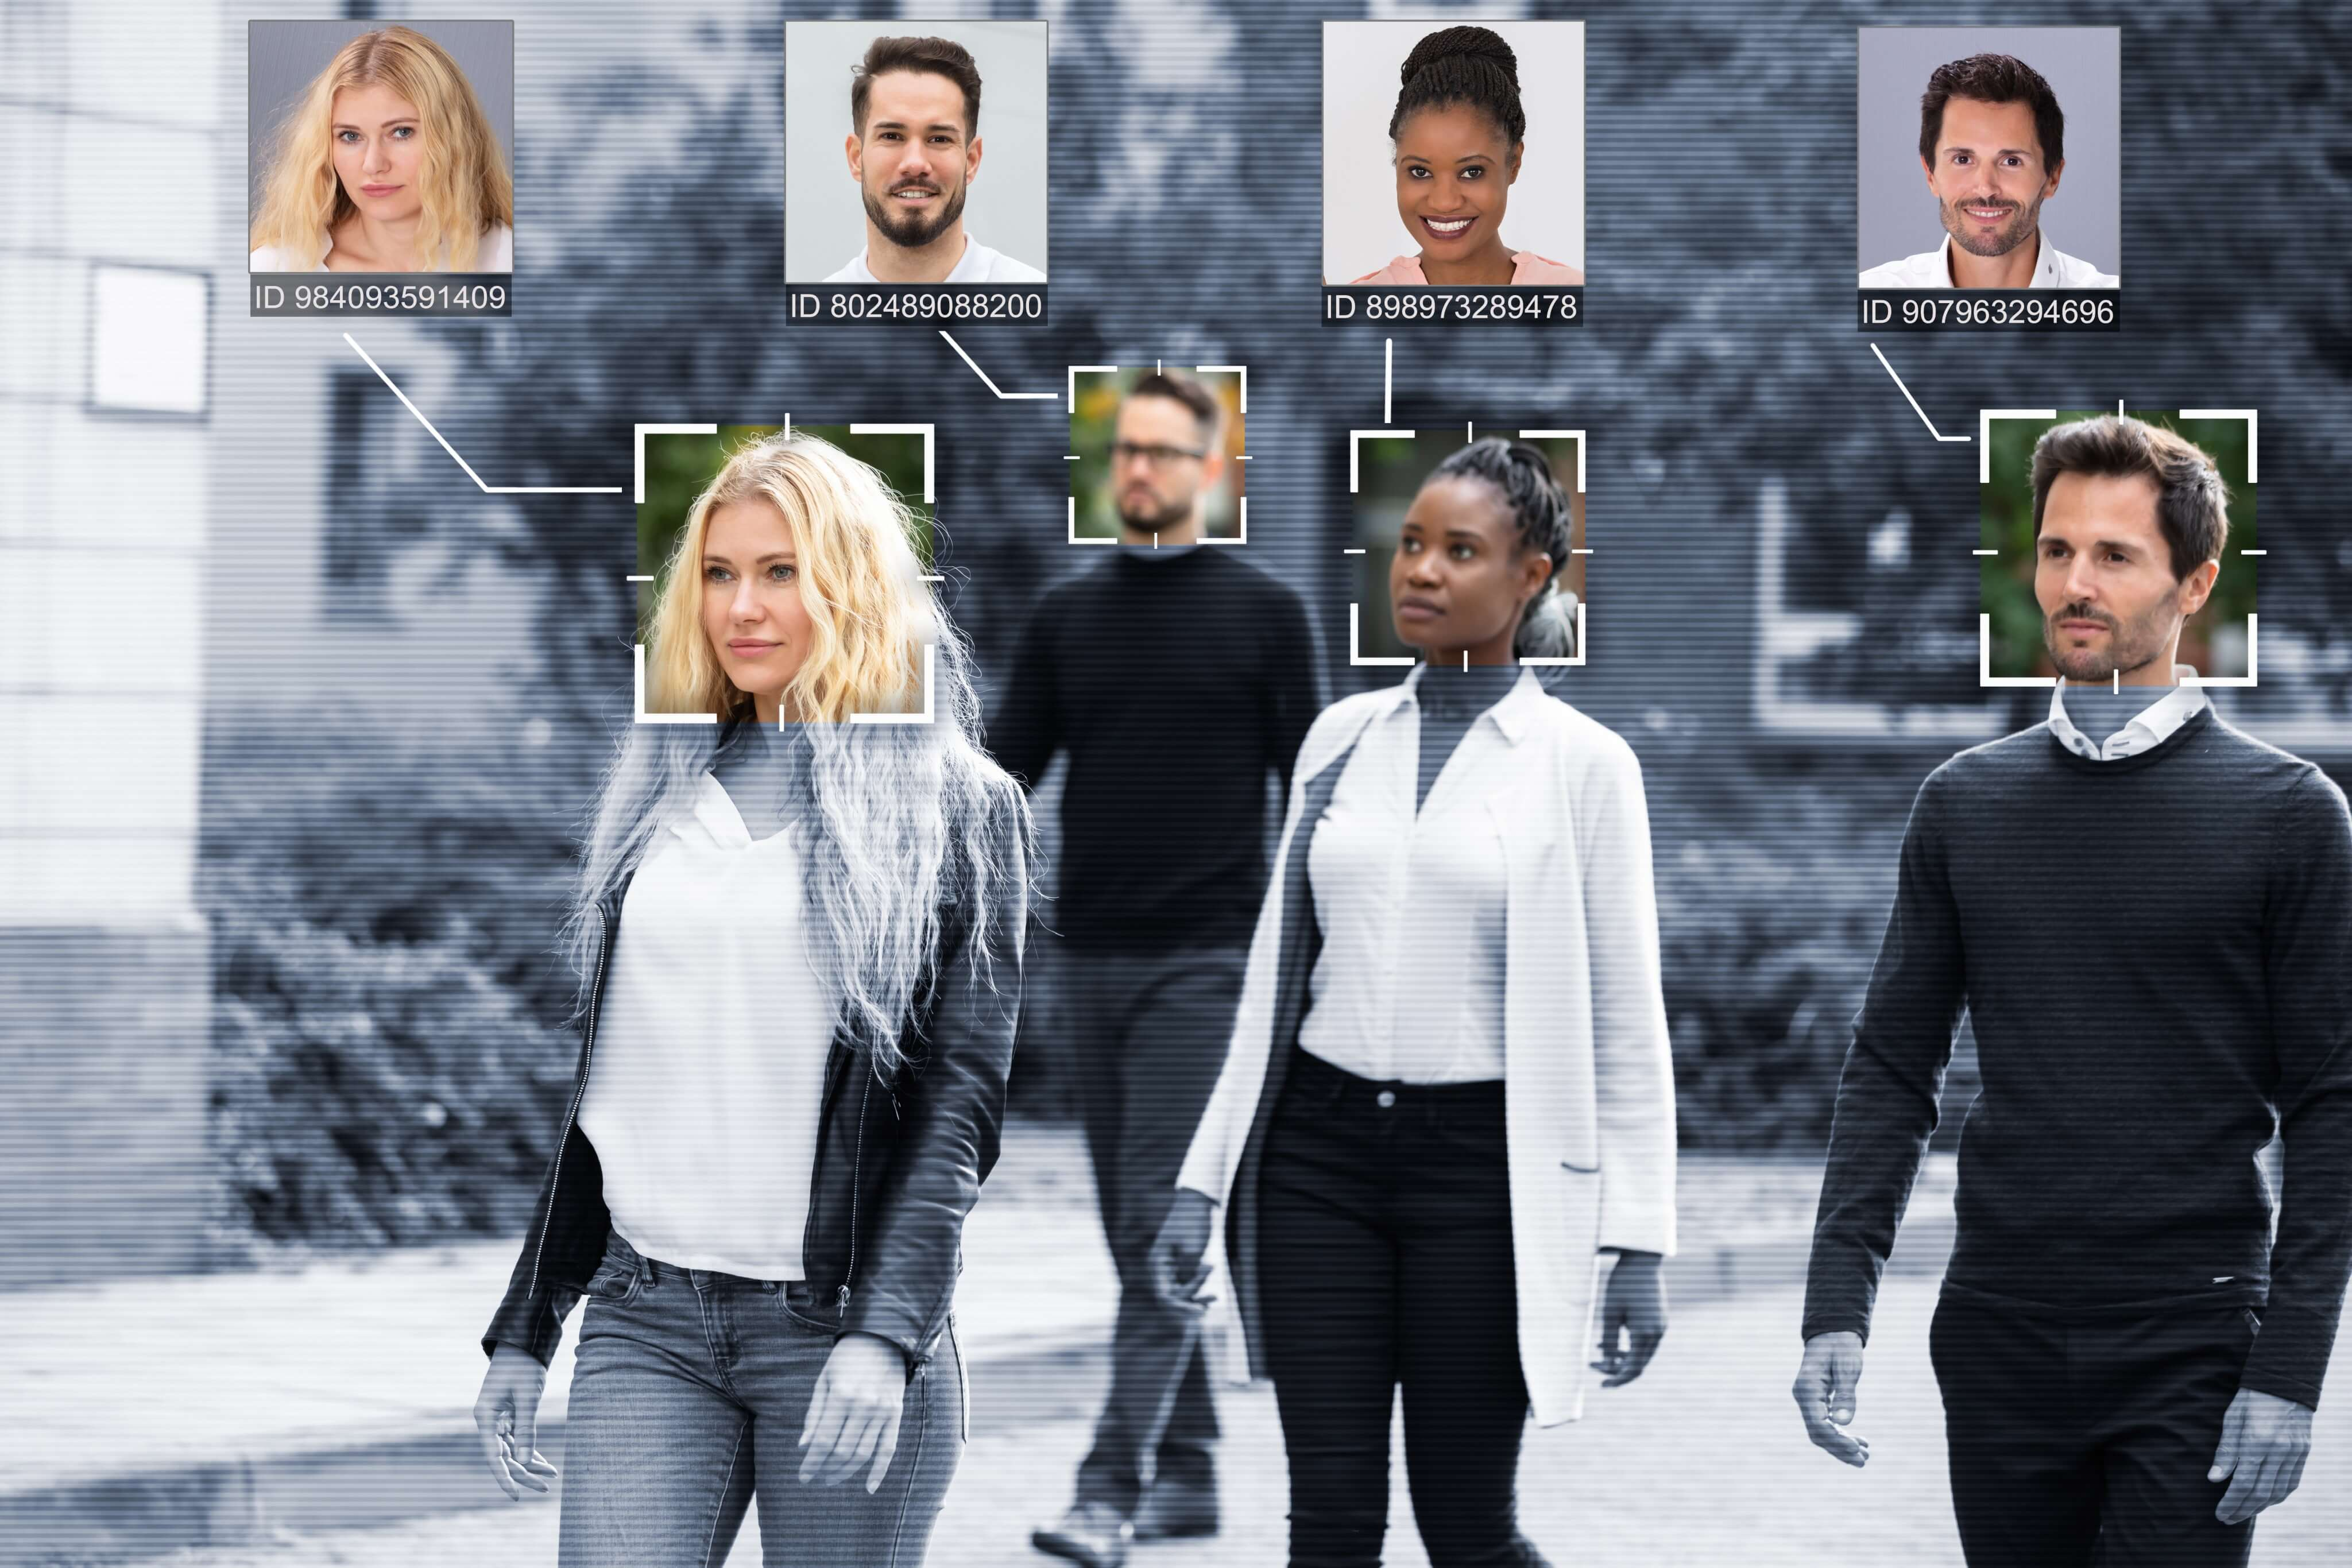 Facial Recognition Systems, Bias and Surveillance: IBM Bows Out